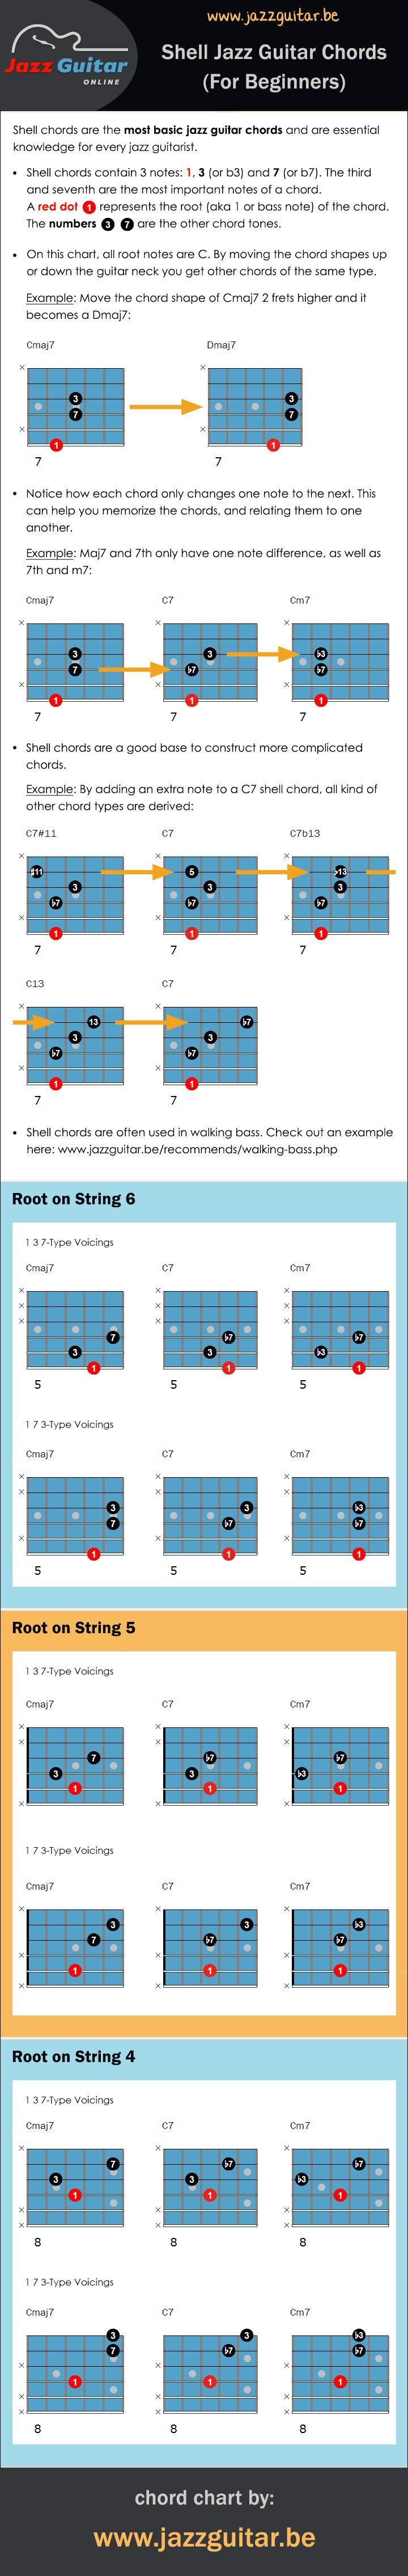 A chord chart with shell chords. Shell chords are the most basic jazz guitar chords, every jazz guitarist should know them...